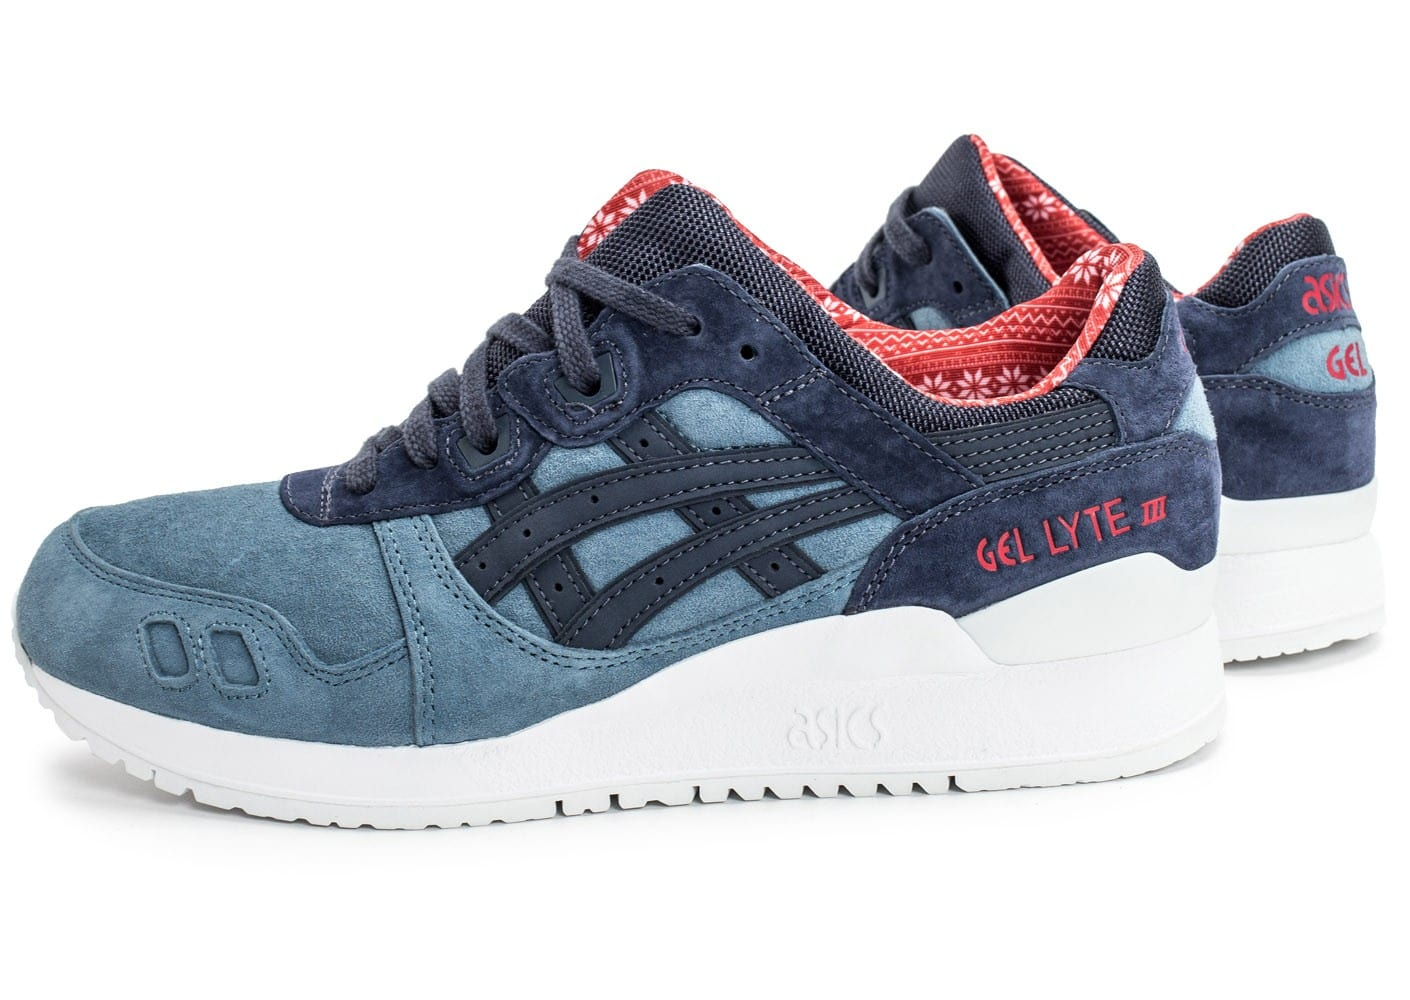 asics gel lyte iii christmas pack bleue chaussures homme chausport. Black Bedroom Furniture Sets. Home Design Ideas